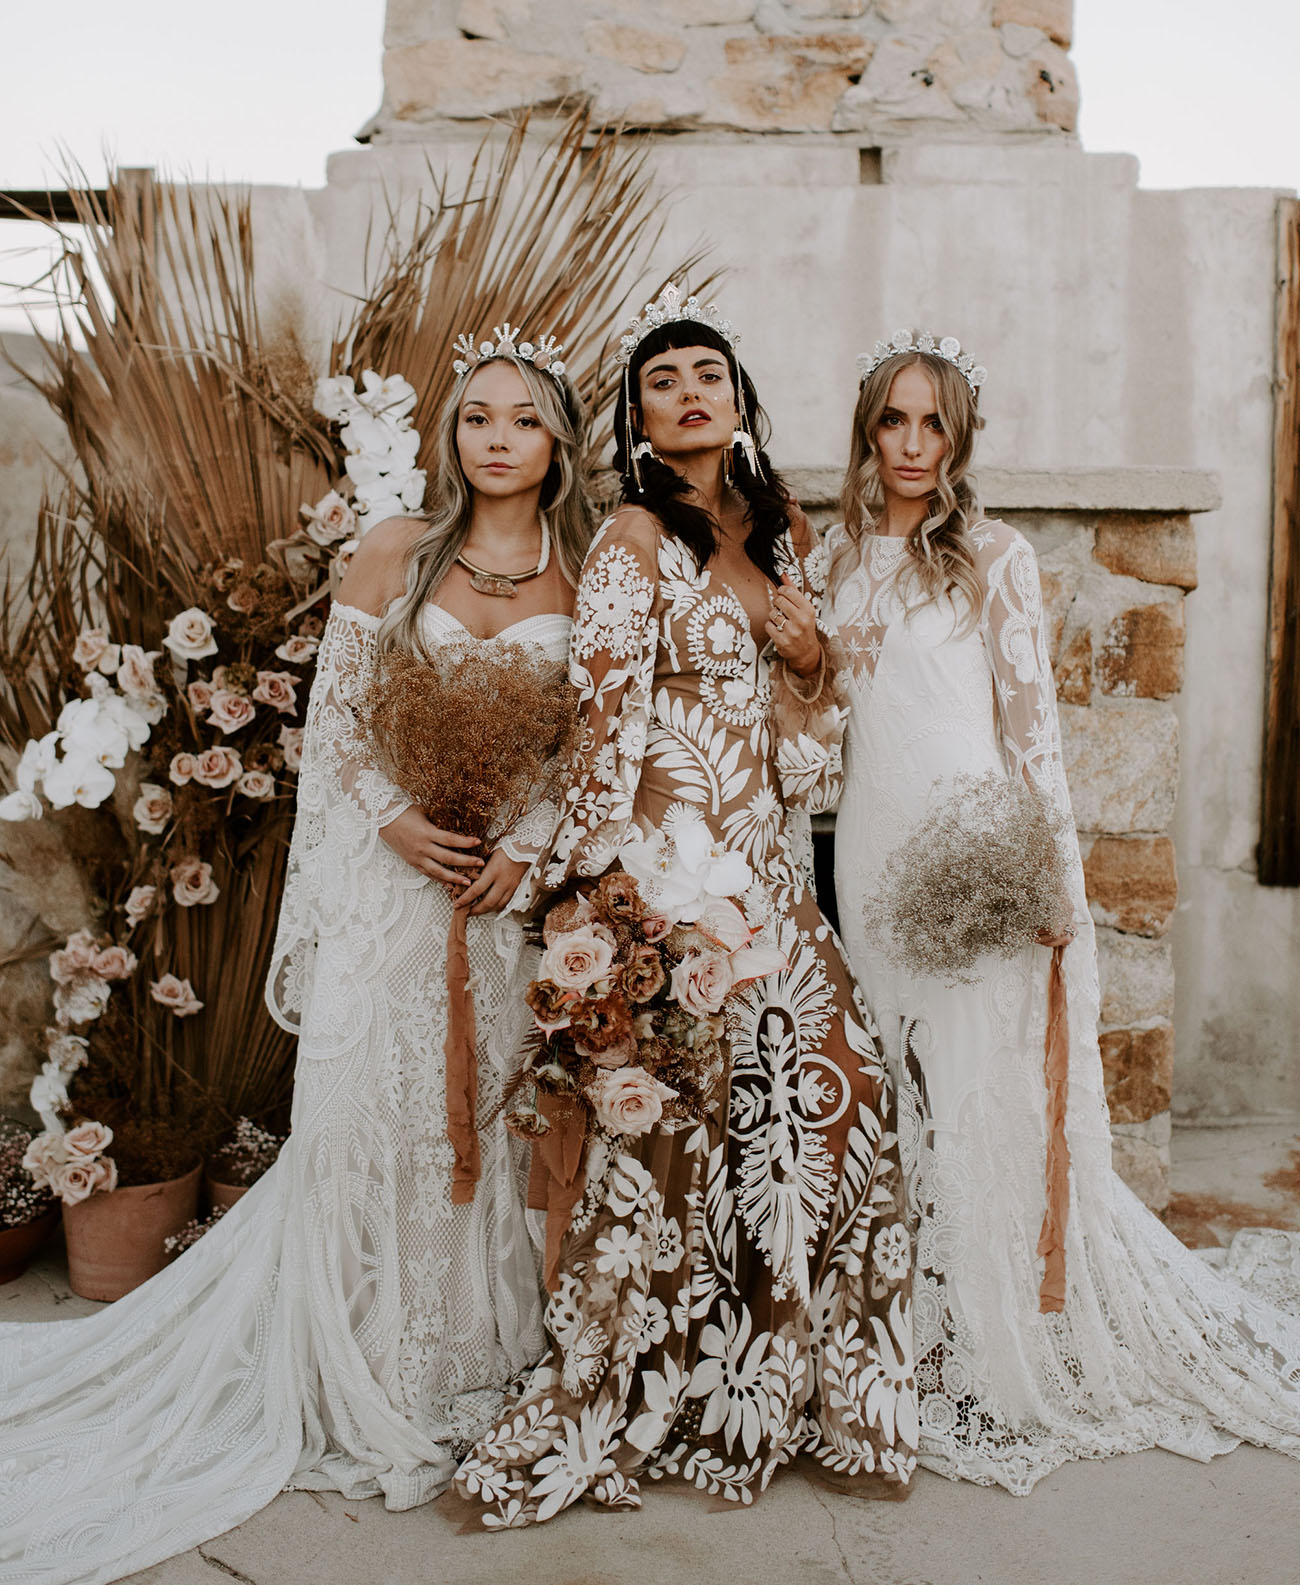 We are the Wild Ones: Nude + Rose Gold Wedding Inspiration in the Desert ? Part 1